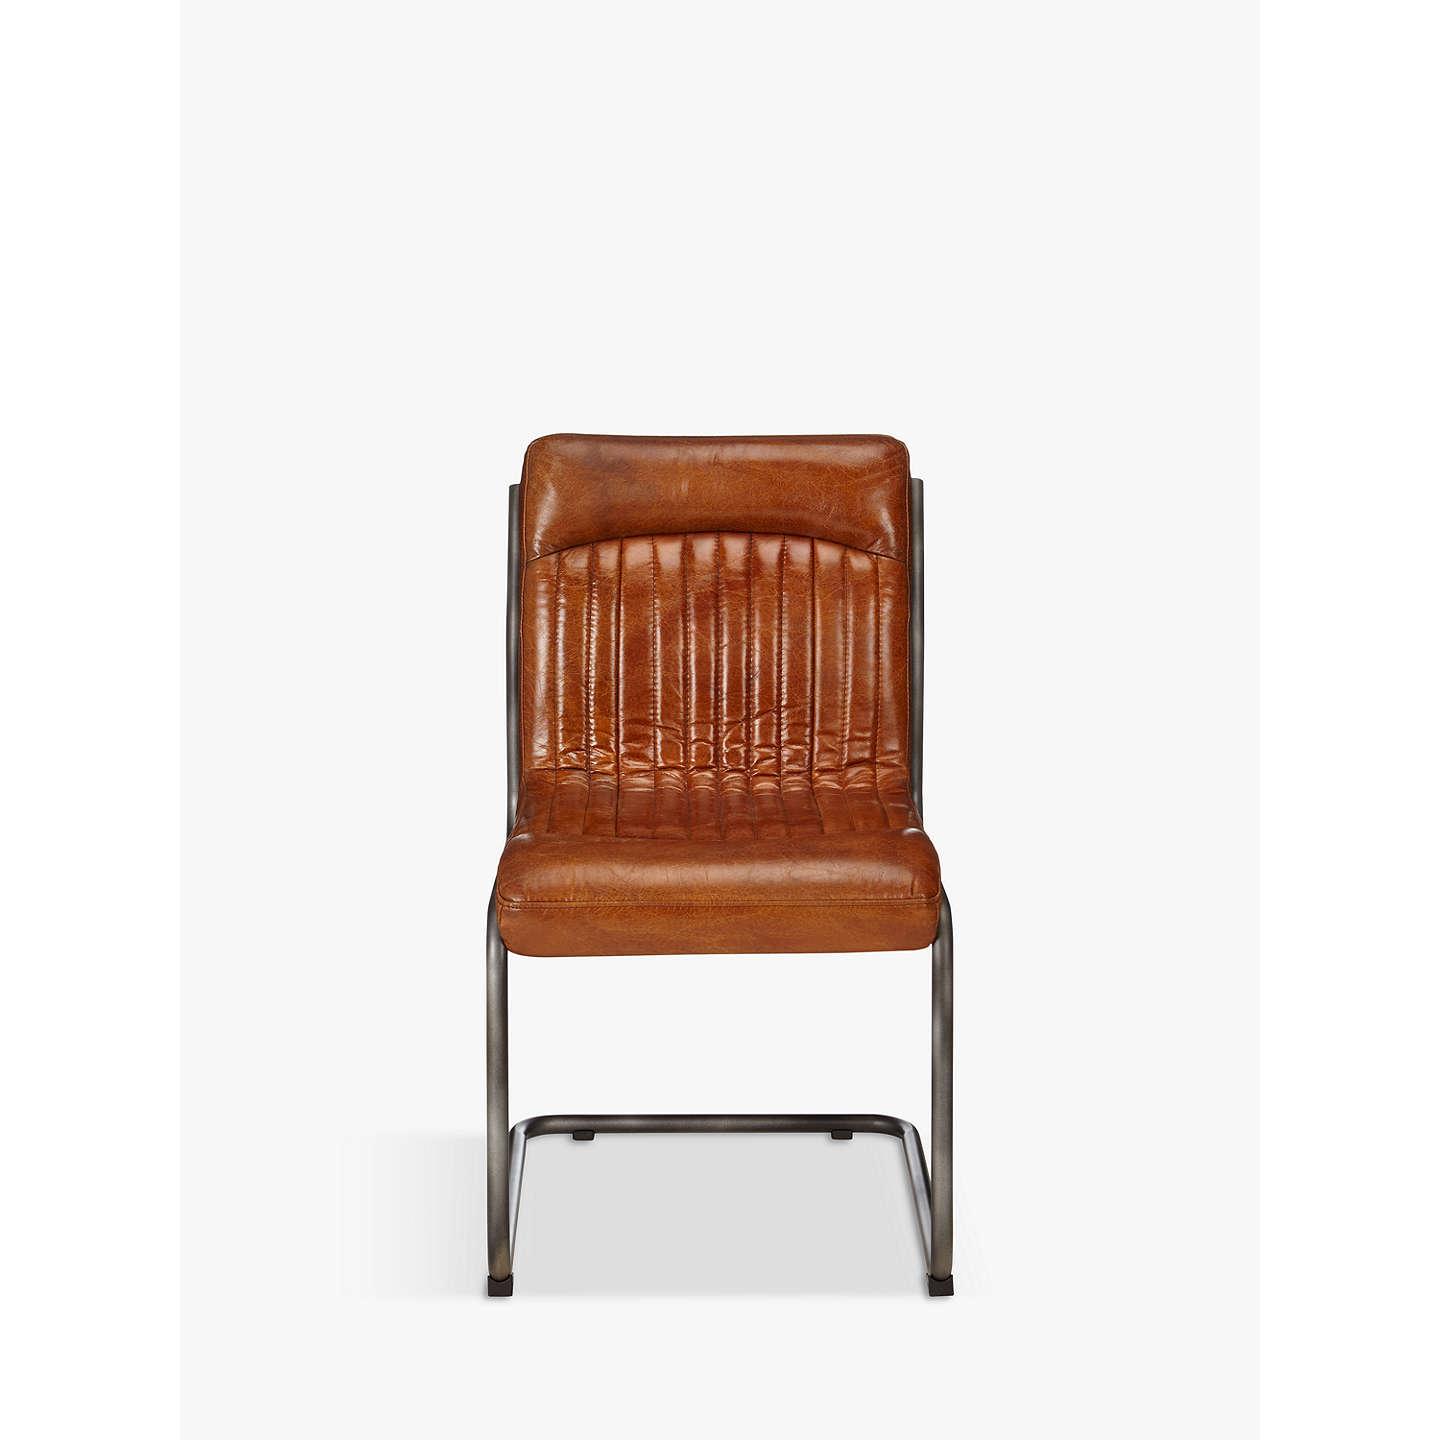 BuyHudson Living Capri Leather Chair, Brown Online at johnlewis.com